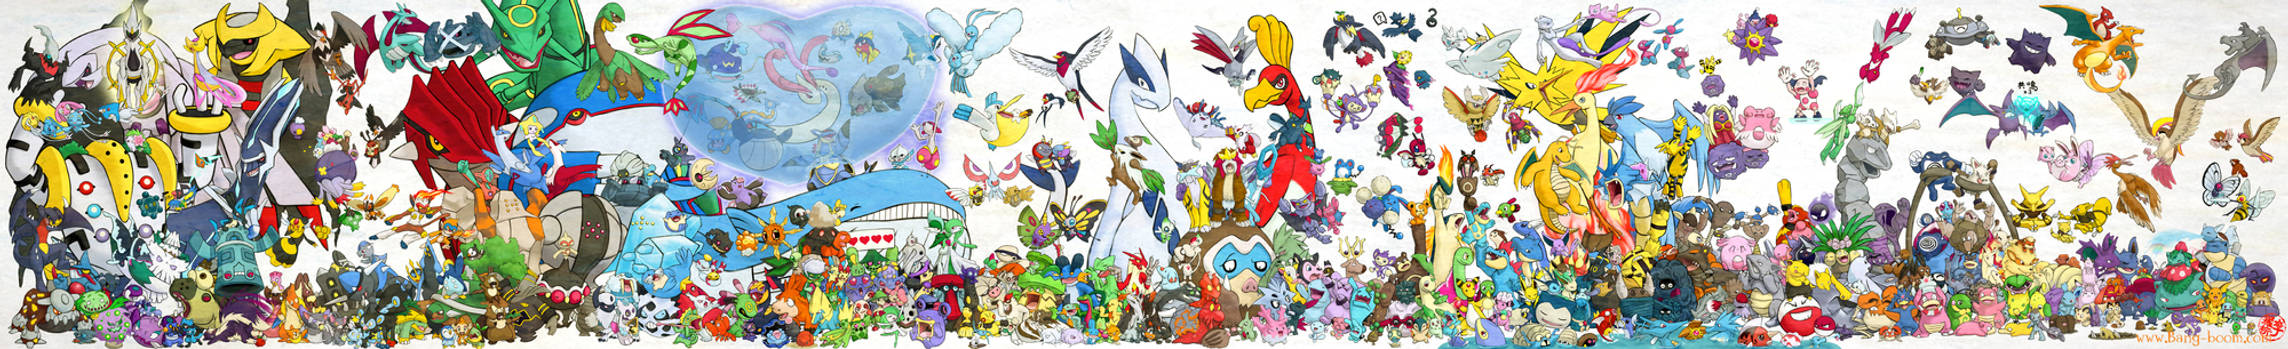 493 Pokemon Assemble